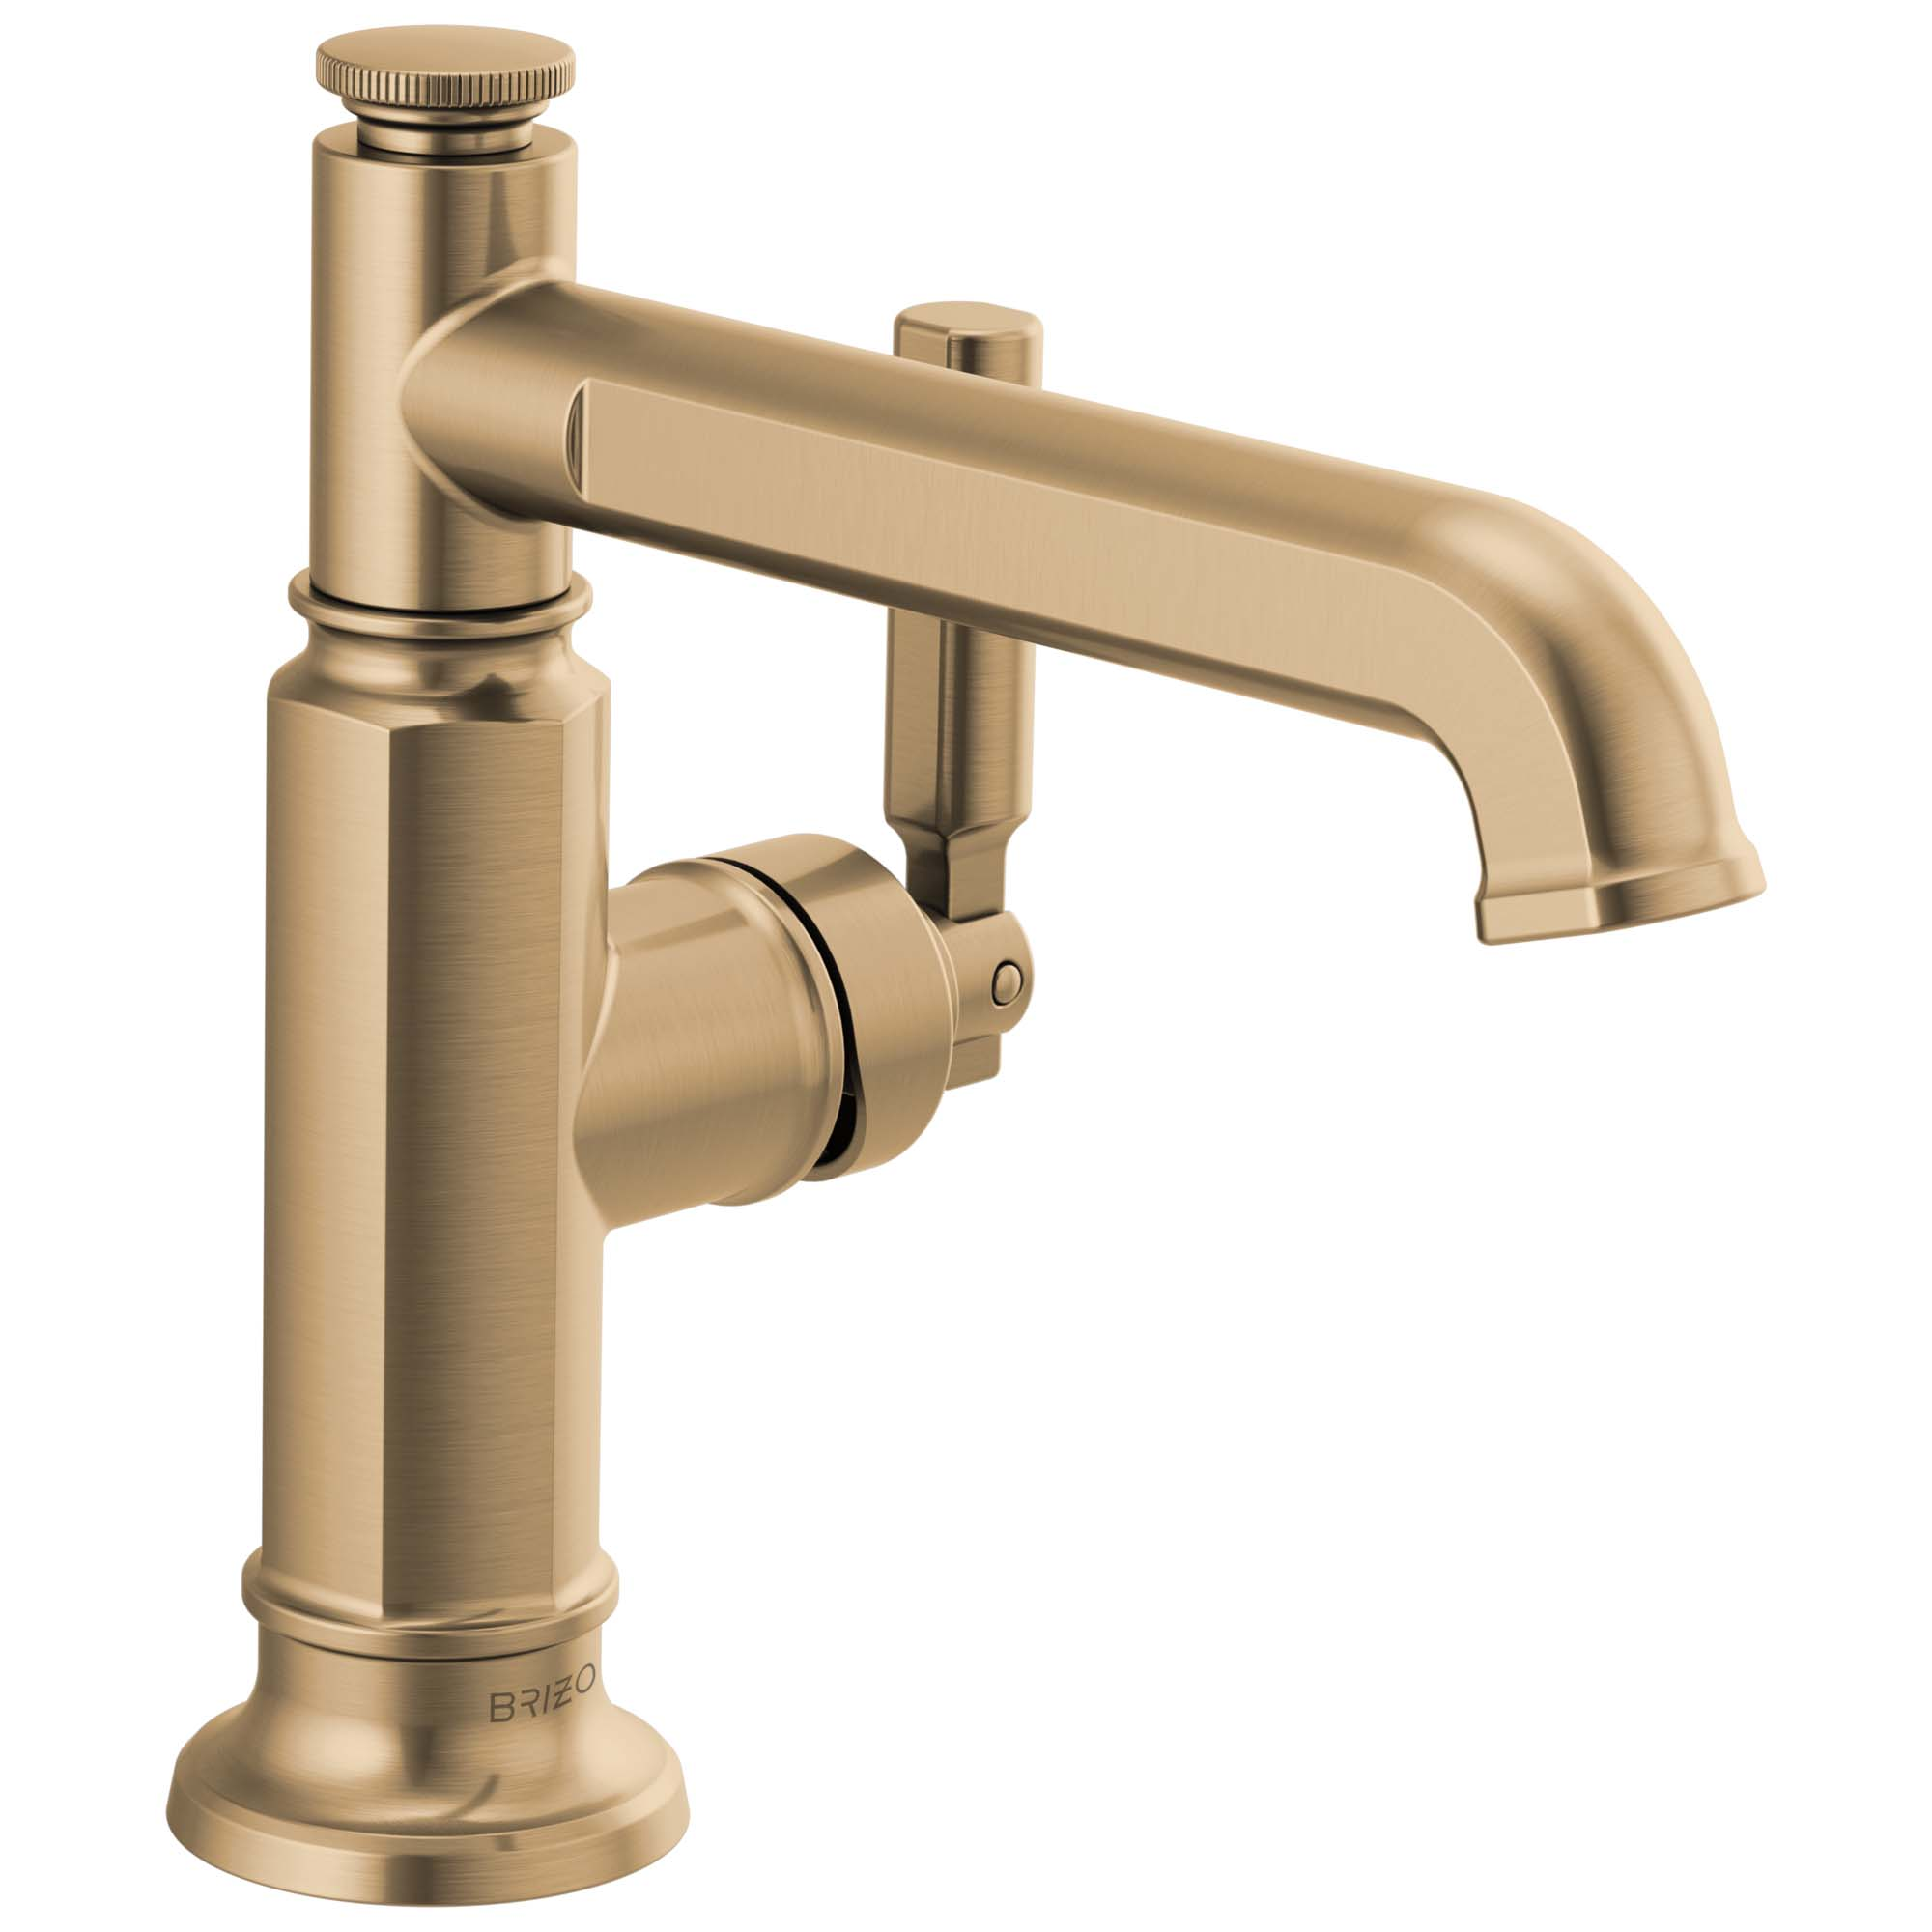 Brizo 65076LF-GL Brizo Invari: Single-Handle Lavatory Faucet - Luxe Gold